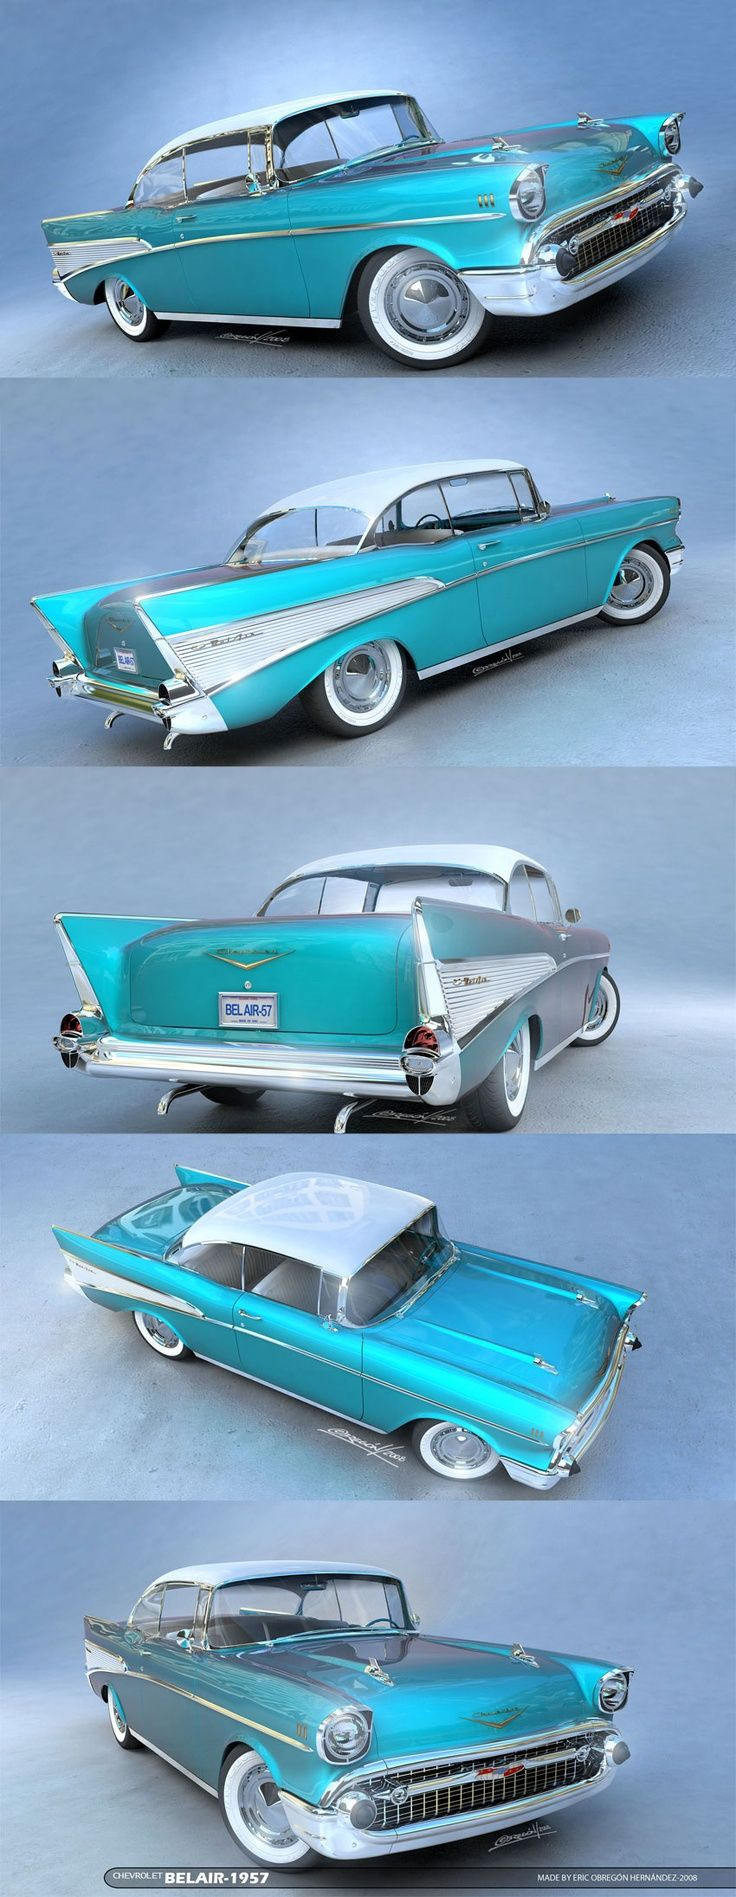 1955 dodge royal lancer convertible cream black fvr cars - 1957 Spring Mint Green Bel Air Re Pin Brought To You By Bestrate Carinsurance At Houseofinsurance Eugene Pinterest Bel Air Mint Green And Spring